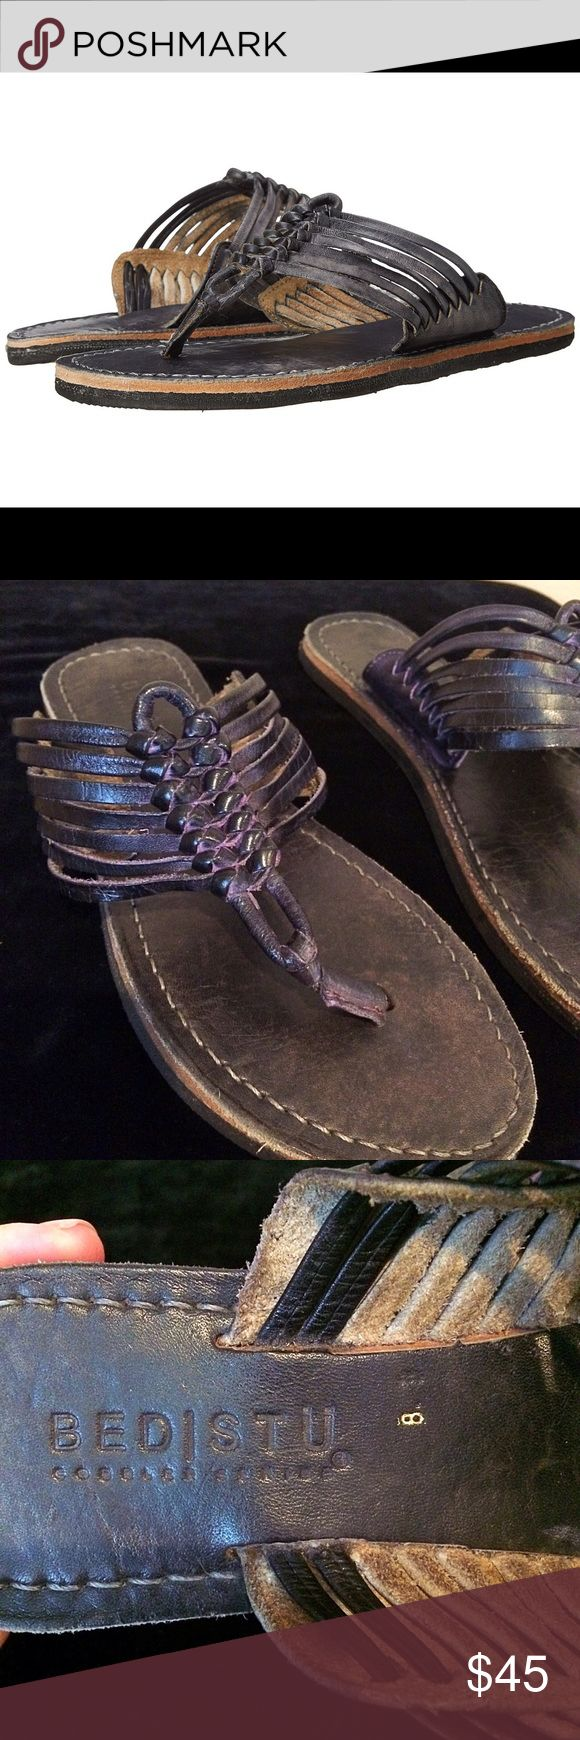 Bed Stu Riley sz 8 purple woven leather sandal Bed Stu size 8 Riley super cute leather woven purple sandals Thong-style construction. Distressed leather upper. Leather lining. Lightly cushioned leather footbed. Man-made sole. Imported. Product measurements were taken using size 9, width M. Please note that measurements may vary by size. Measurements: Weight: 8 oz Bed Stu Shoes Sandals